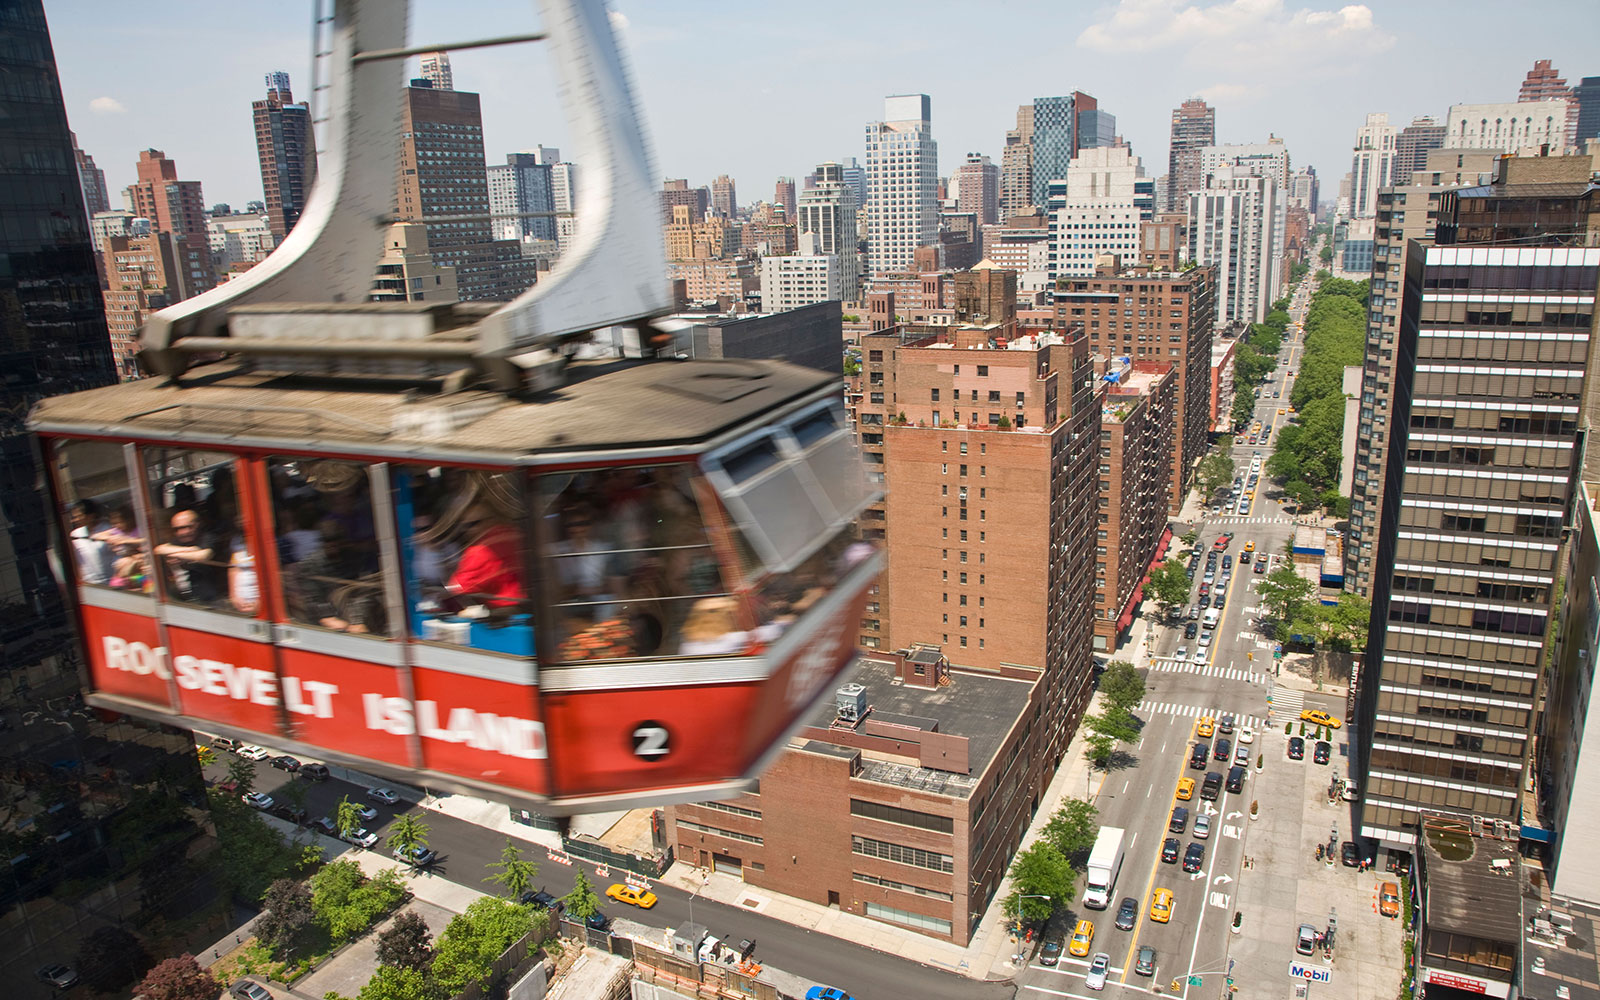 World's Coolest Tram Rides: Roosevelt Island, New York City